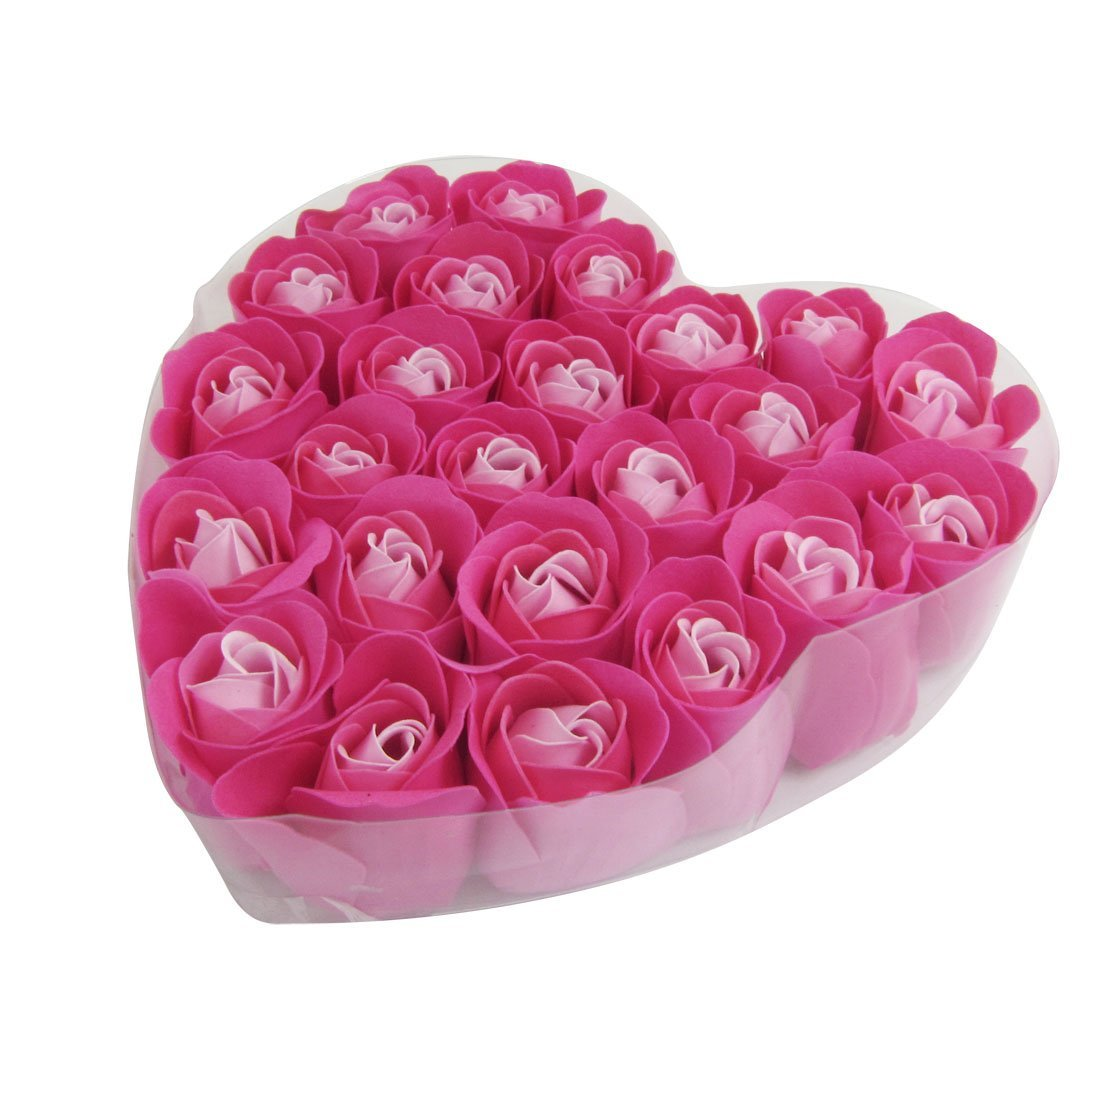 New 24 Pcs Red Rose Scented Bath Soap Rose Petal In Heart Box